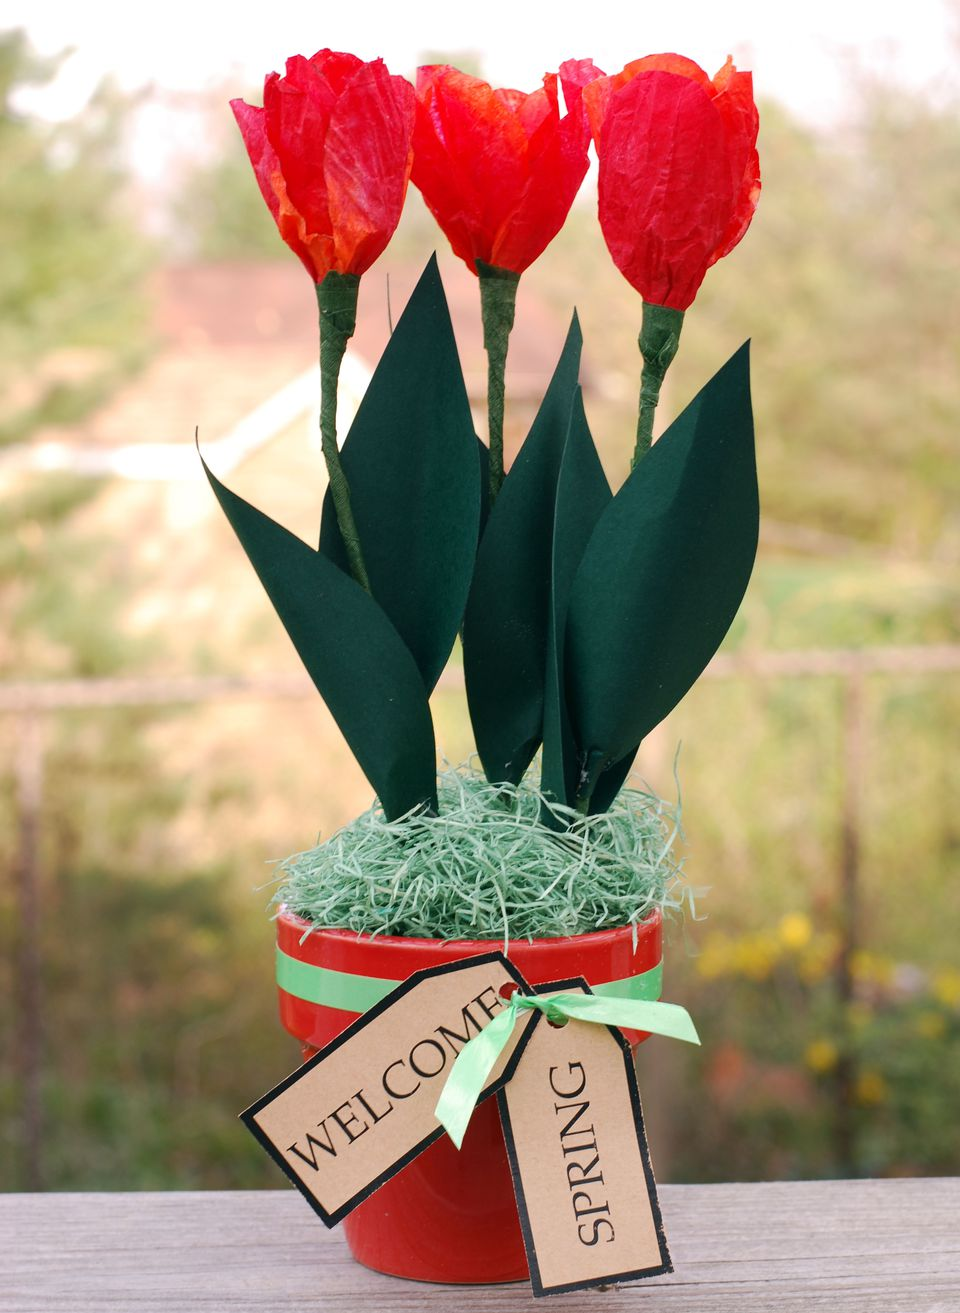 Paper tulips made out of coffe filters